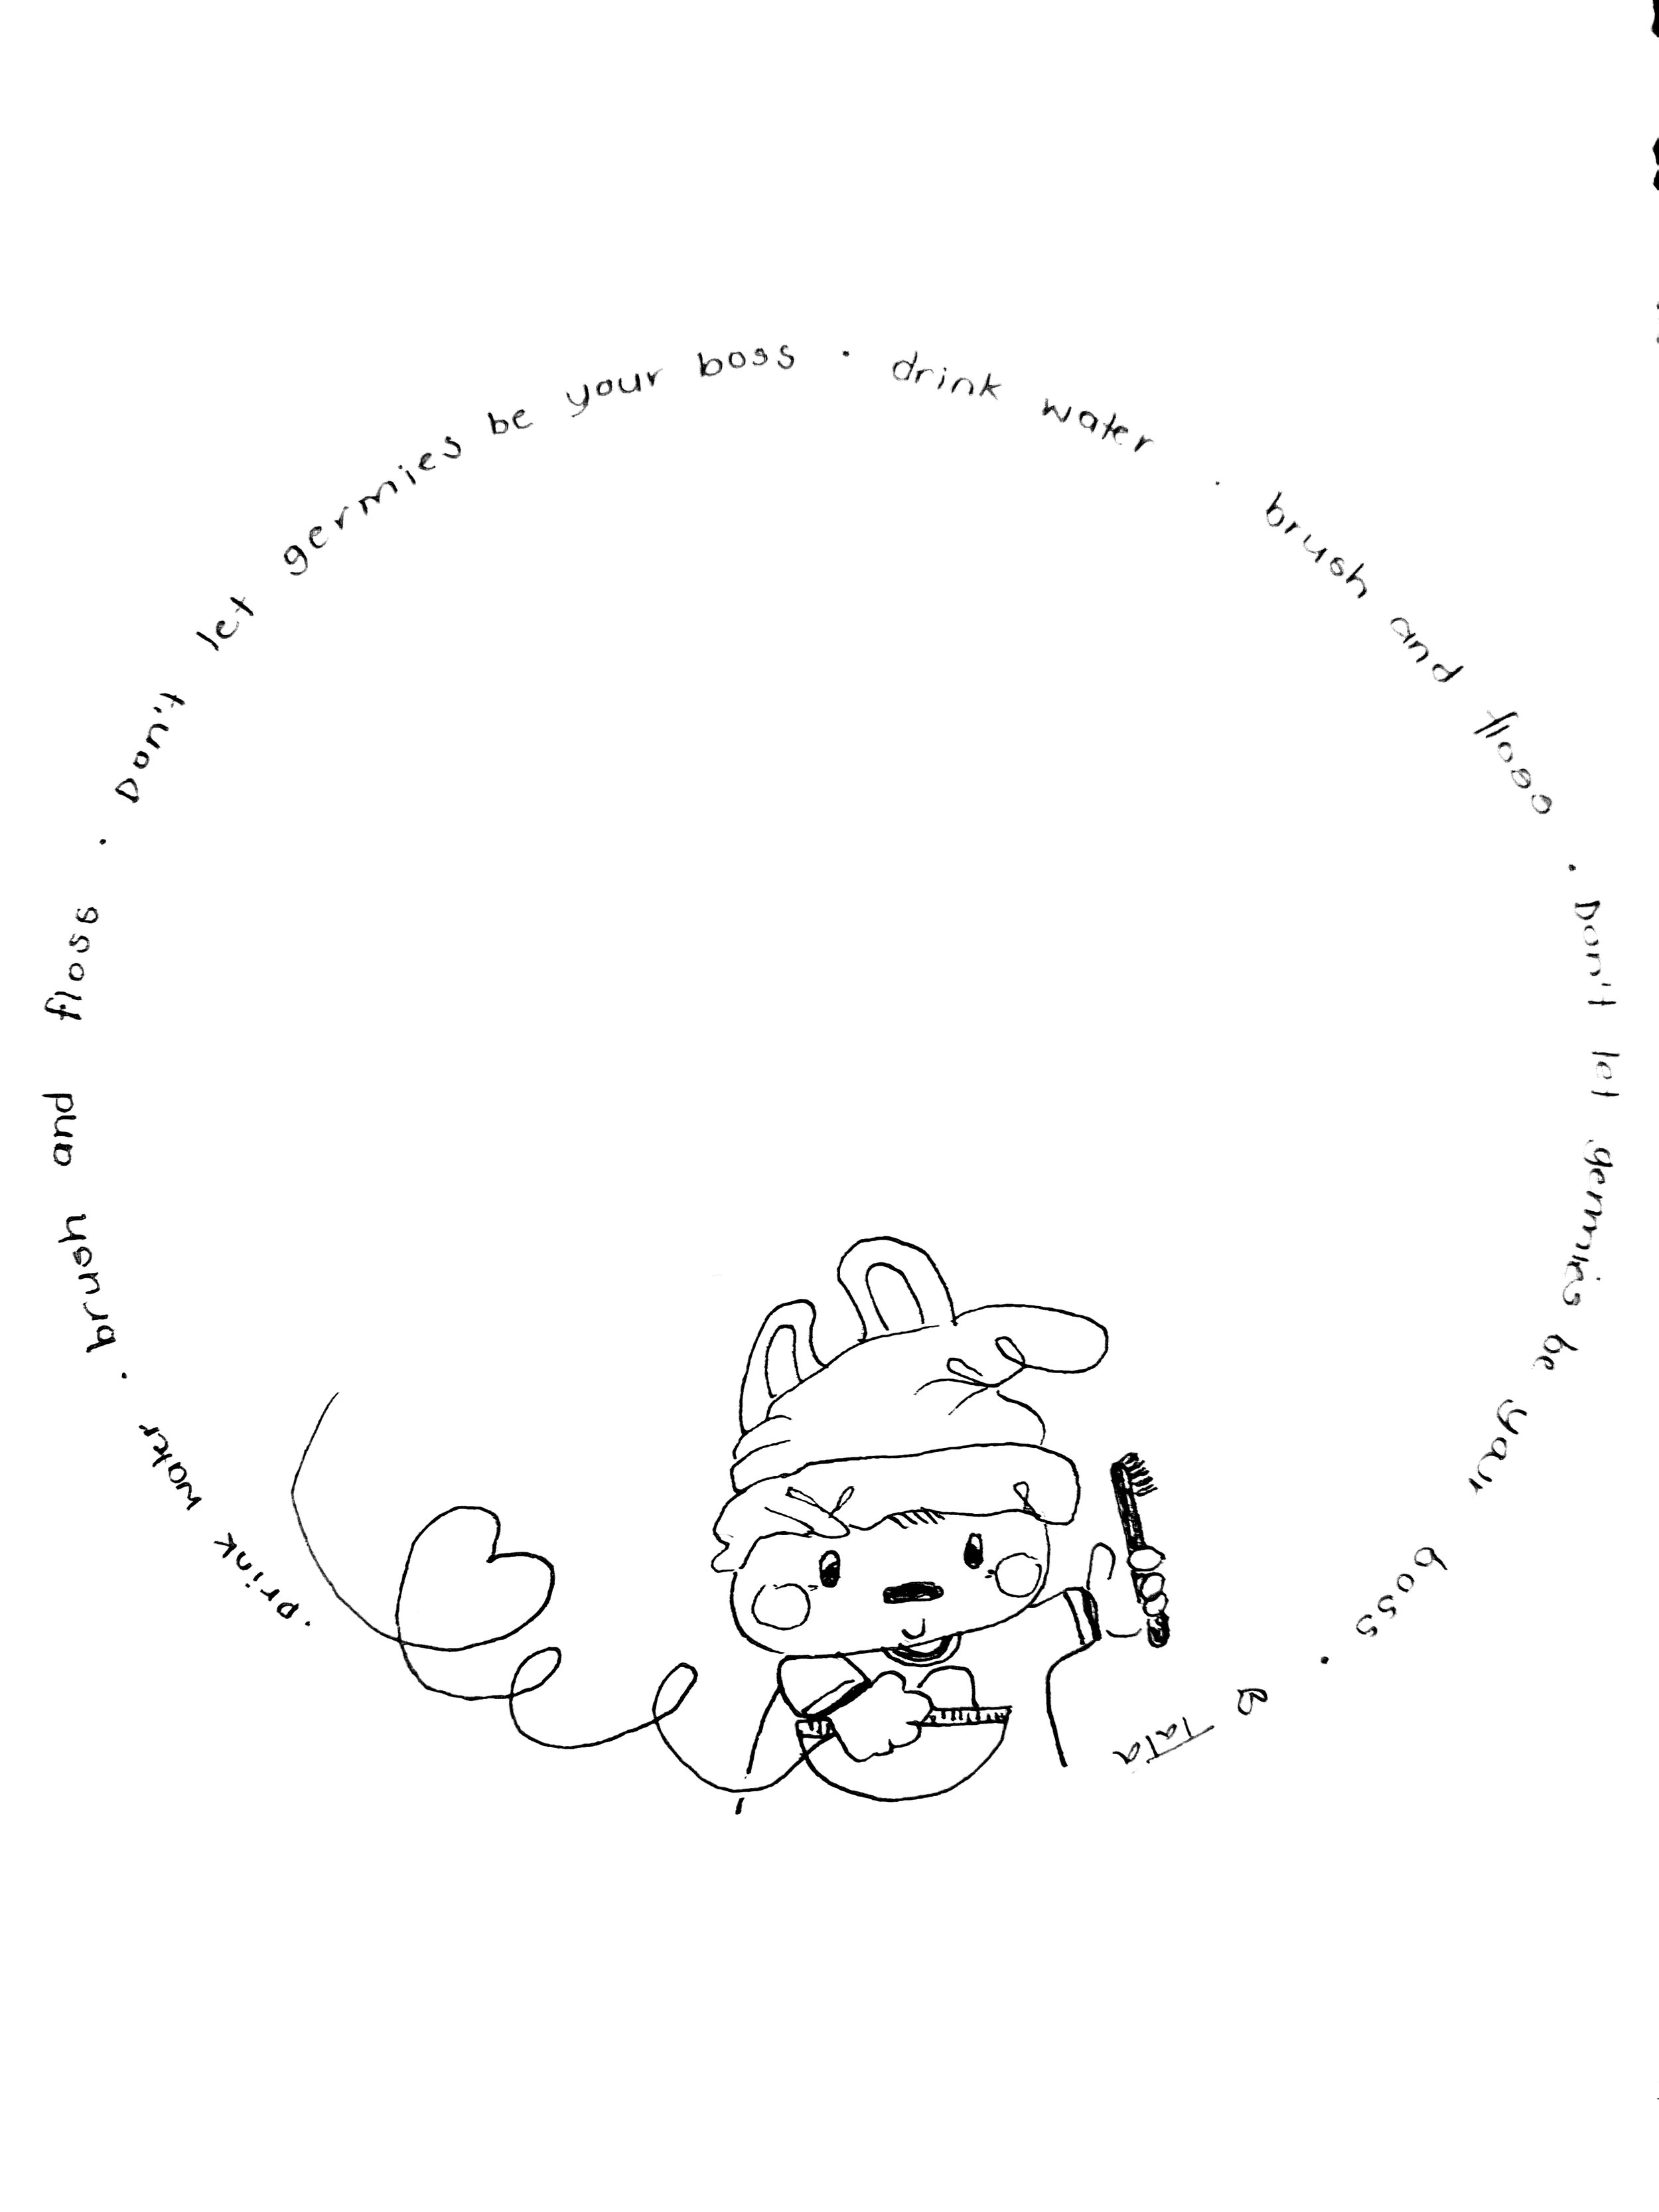 Draw a Picture: What is Tooth Bunny Thinking About?